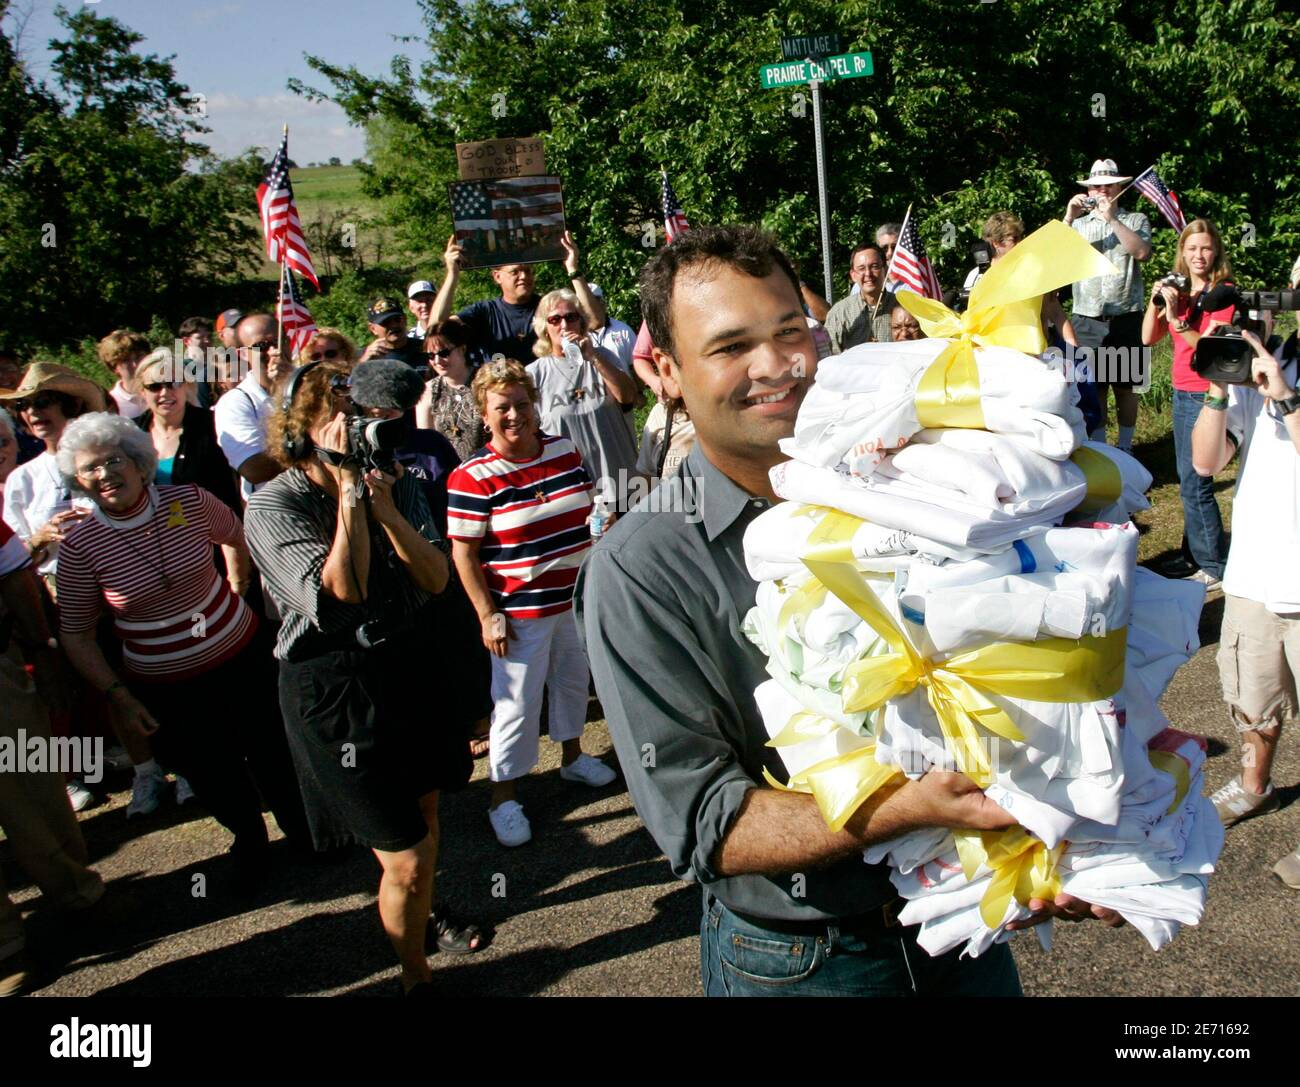 White House representative Bill Burck (R) carries more than a dozen folded bedsheets, each covered with handwritten messages supporting U.S. President George W. Bush, after Bush supporters (background) marched to his ranch in Crawford, Texas August 19, 2005. The goodwill visit by Bush supporters was in contrast to recent weeks of anti-war protests near the ranch by Cindy Sheehan, a mother whose son was killed last year in Iraq, demanding to meet with the President in an attempt to change his Iraq policy. REUTERS/Jason Reed  JIR/CCK Stock Photo